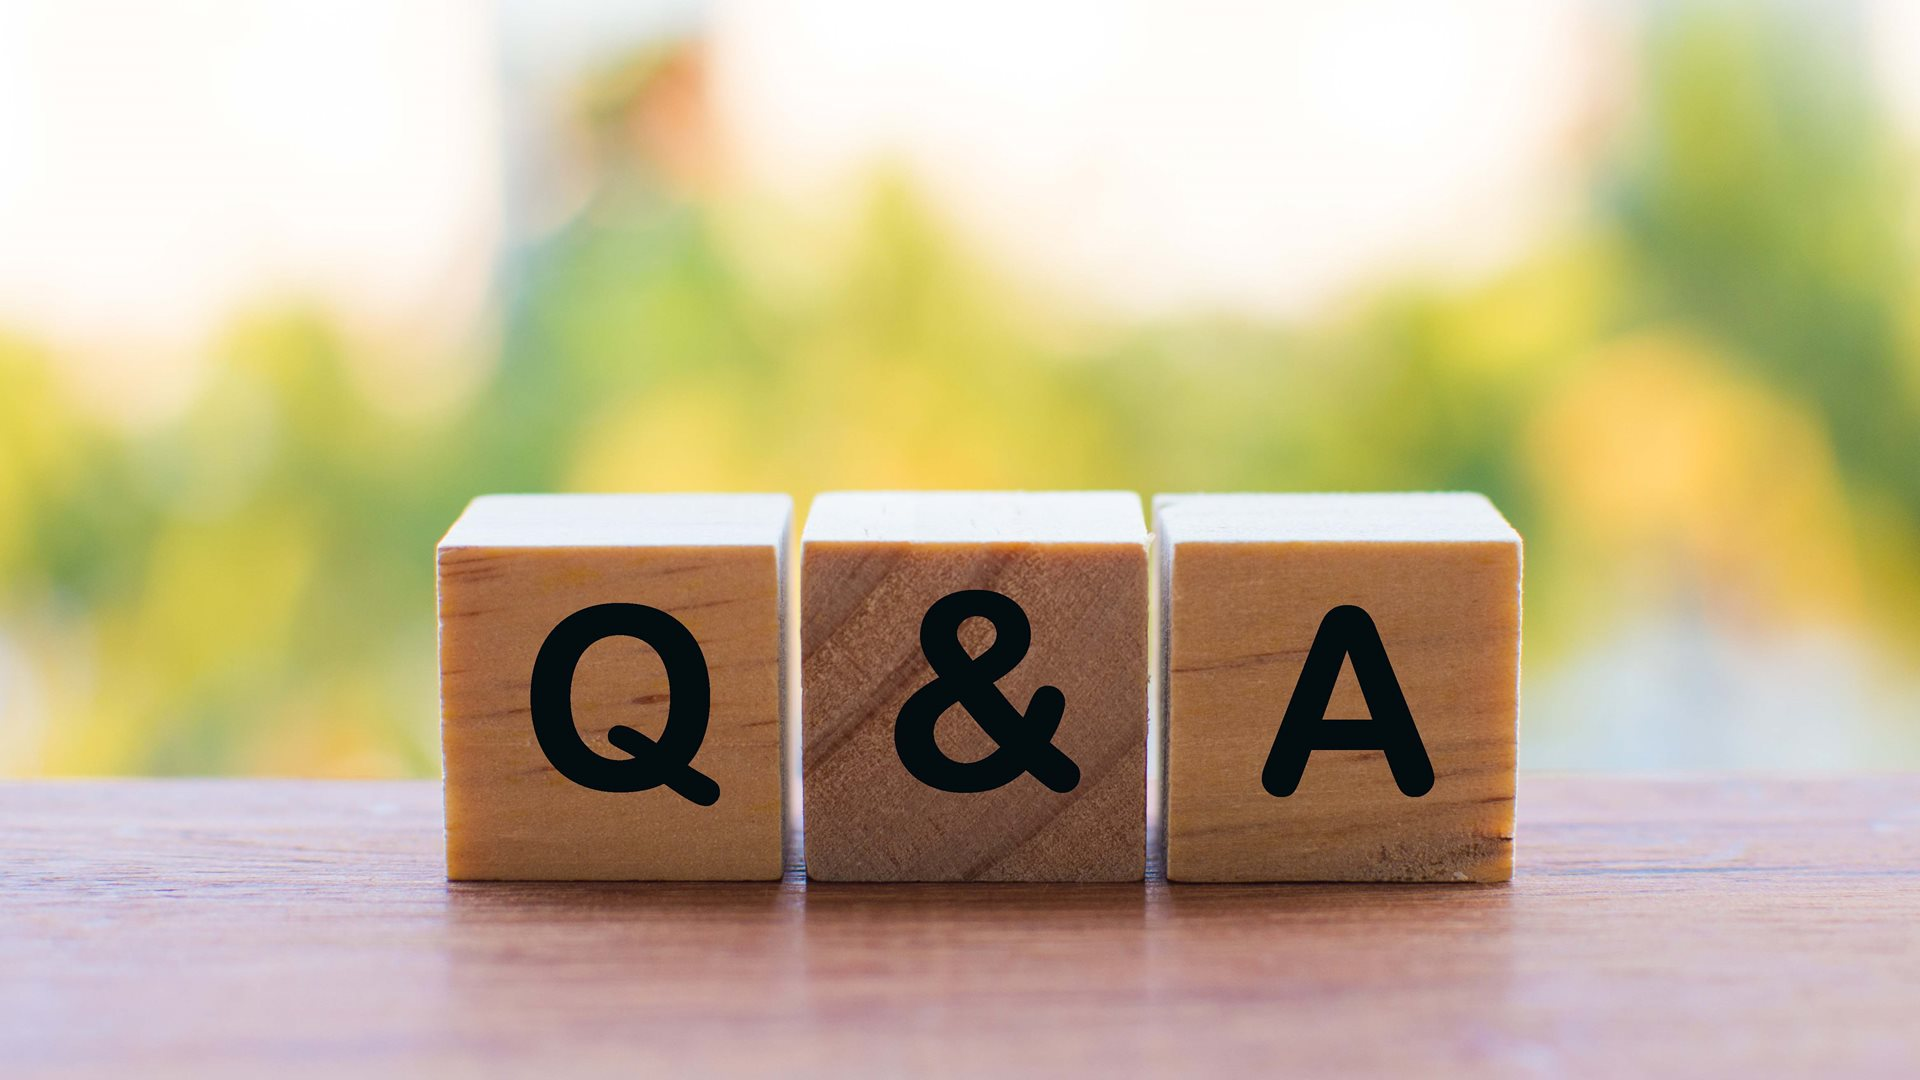 """Q&A"" blocks on a table against a green blurred photo background"